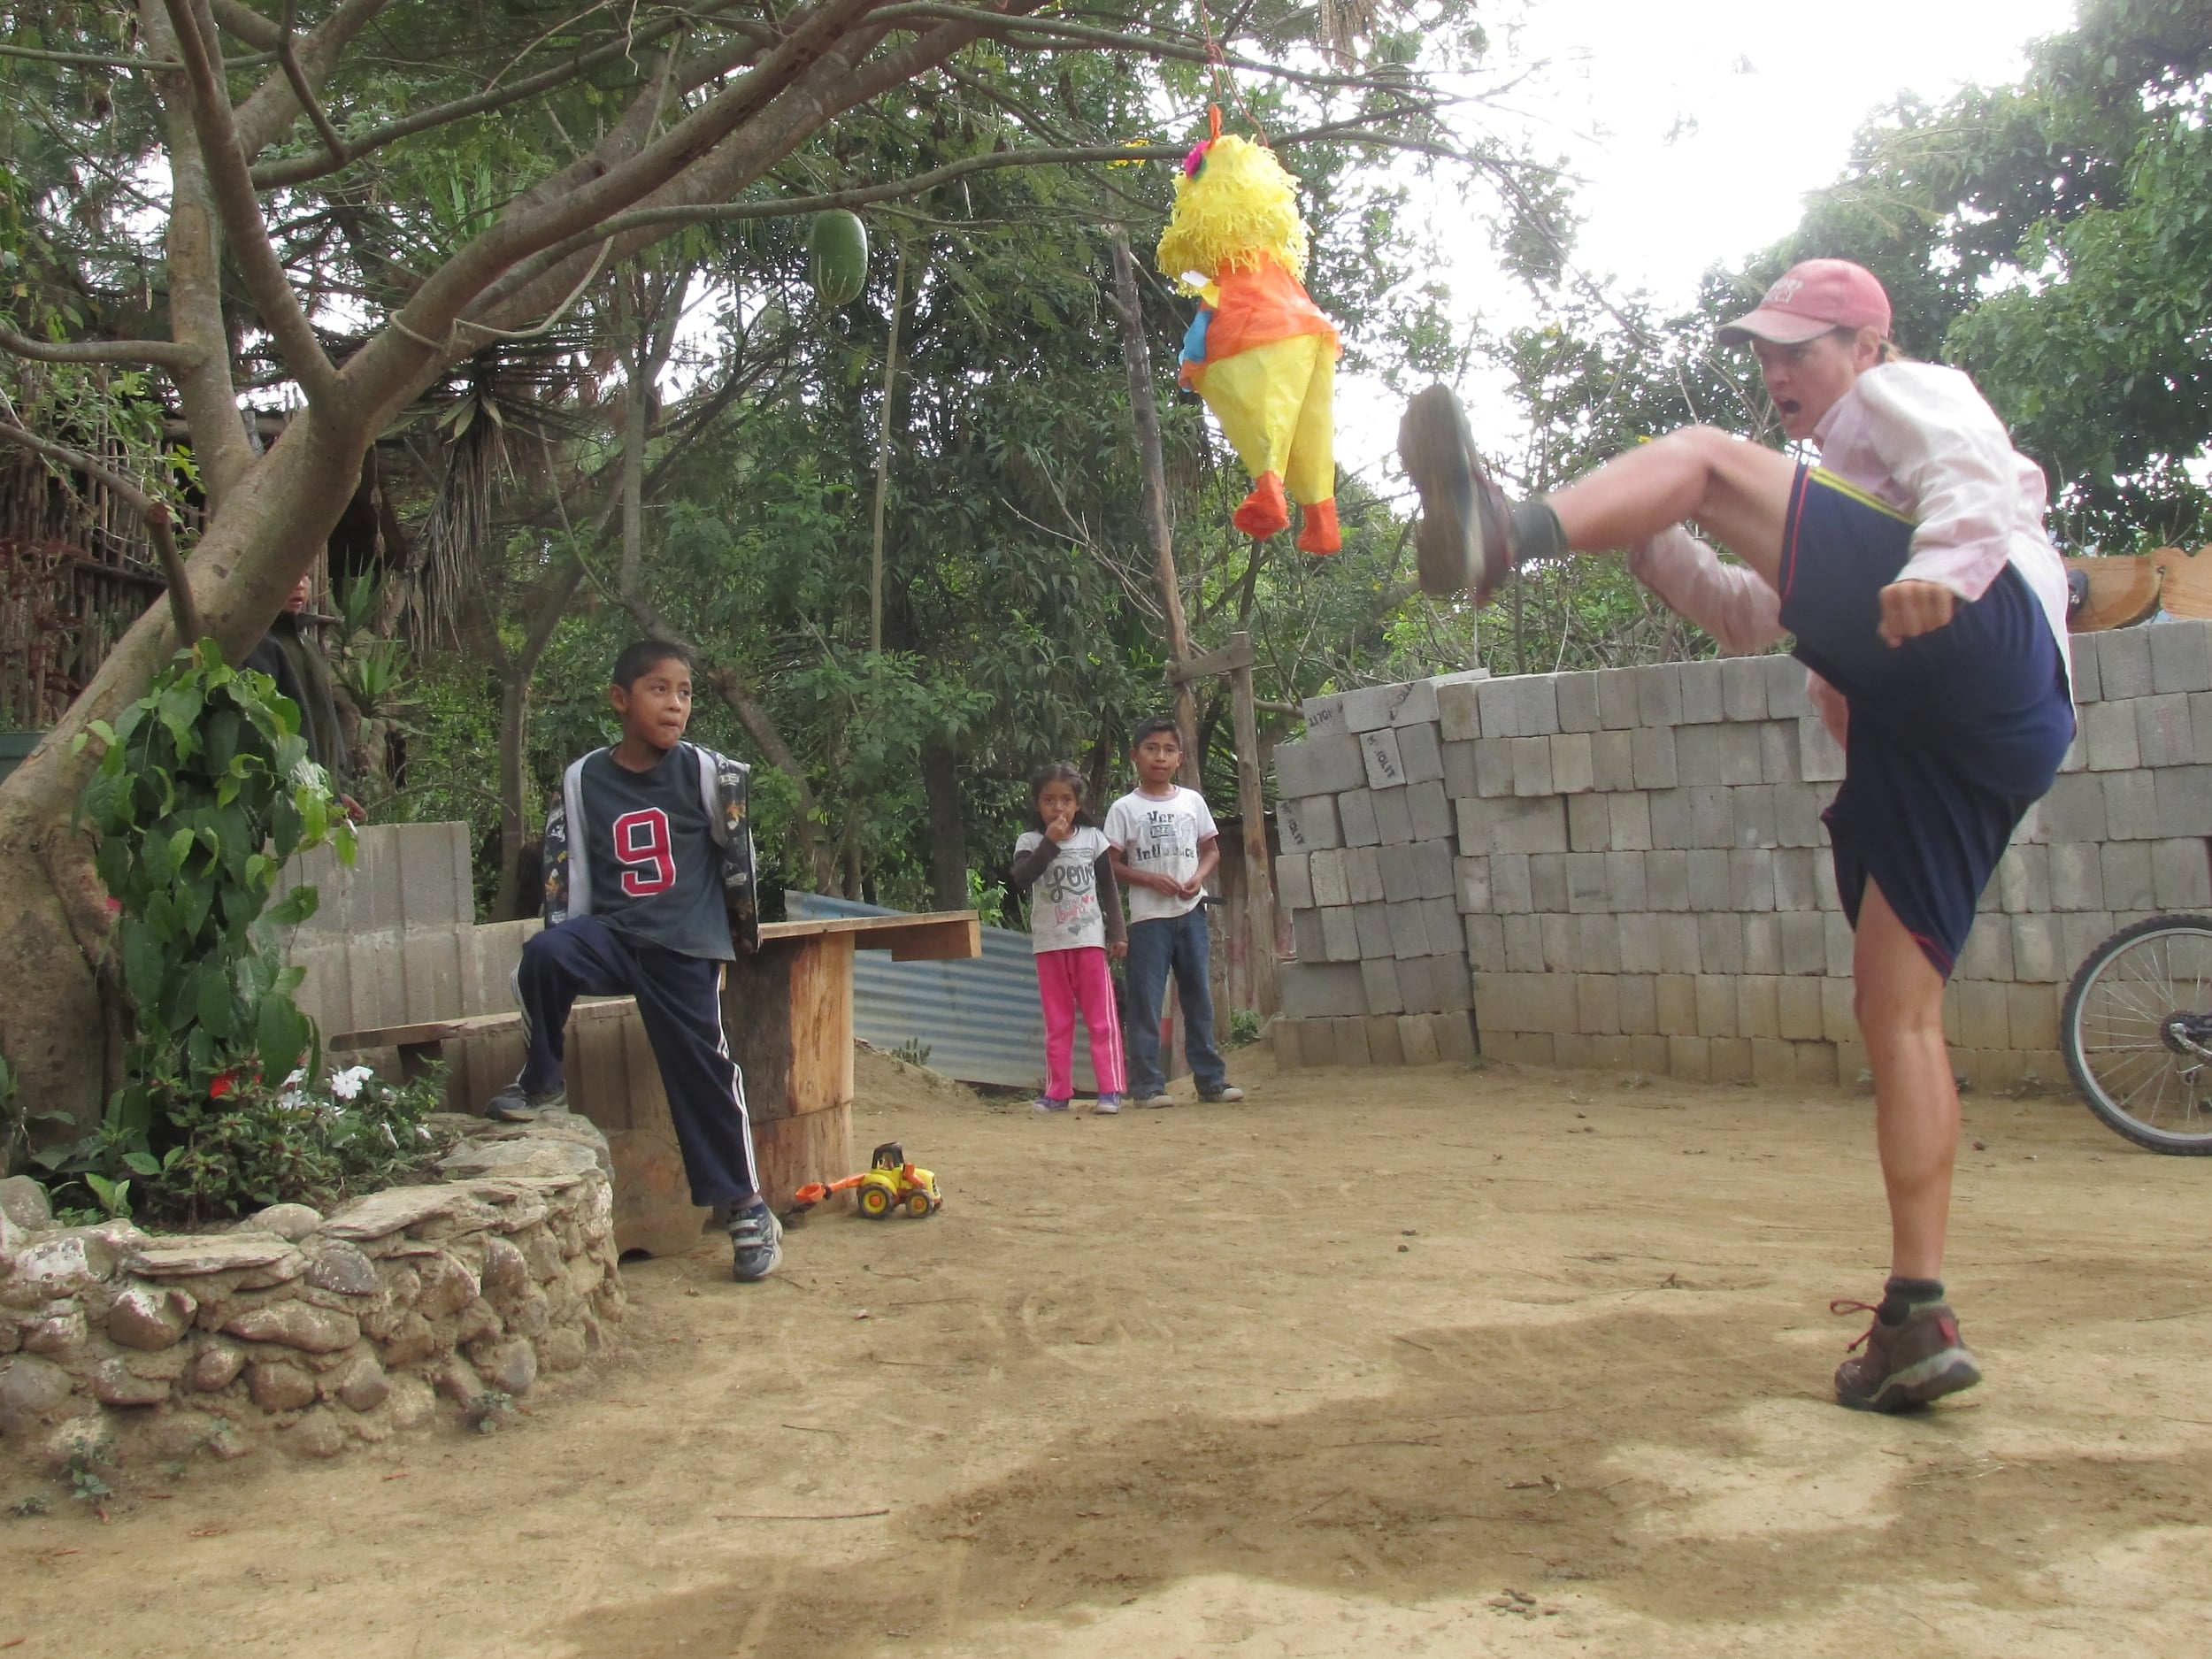 Pinatas are traditionally filled with candy and broken with a stick so the candy falls out. I first try fighting the pinata with an innovative martial arts approach.